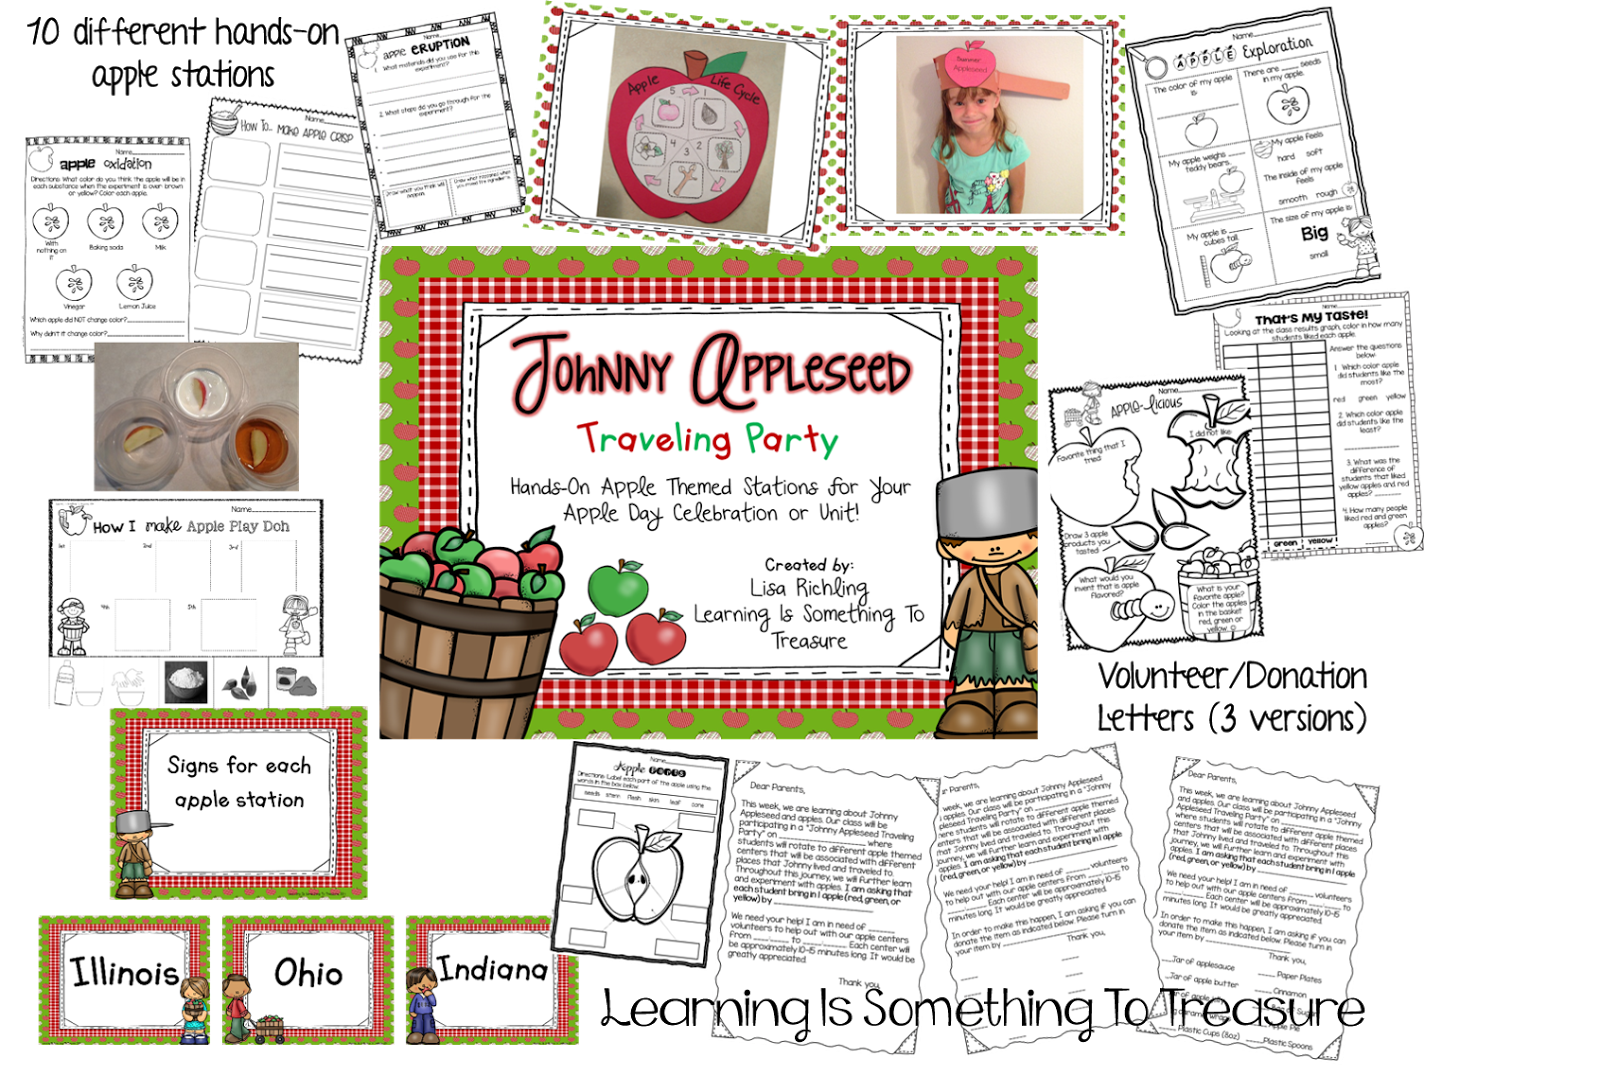 Apple parts clipart jpg freeuse download Learning is Something to Treasure: Johnny Appleseed Traveling Party ... jpg freeuse download